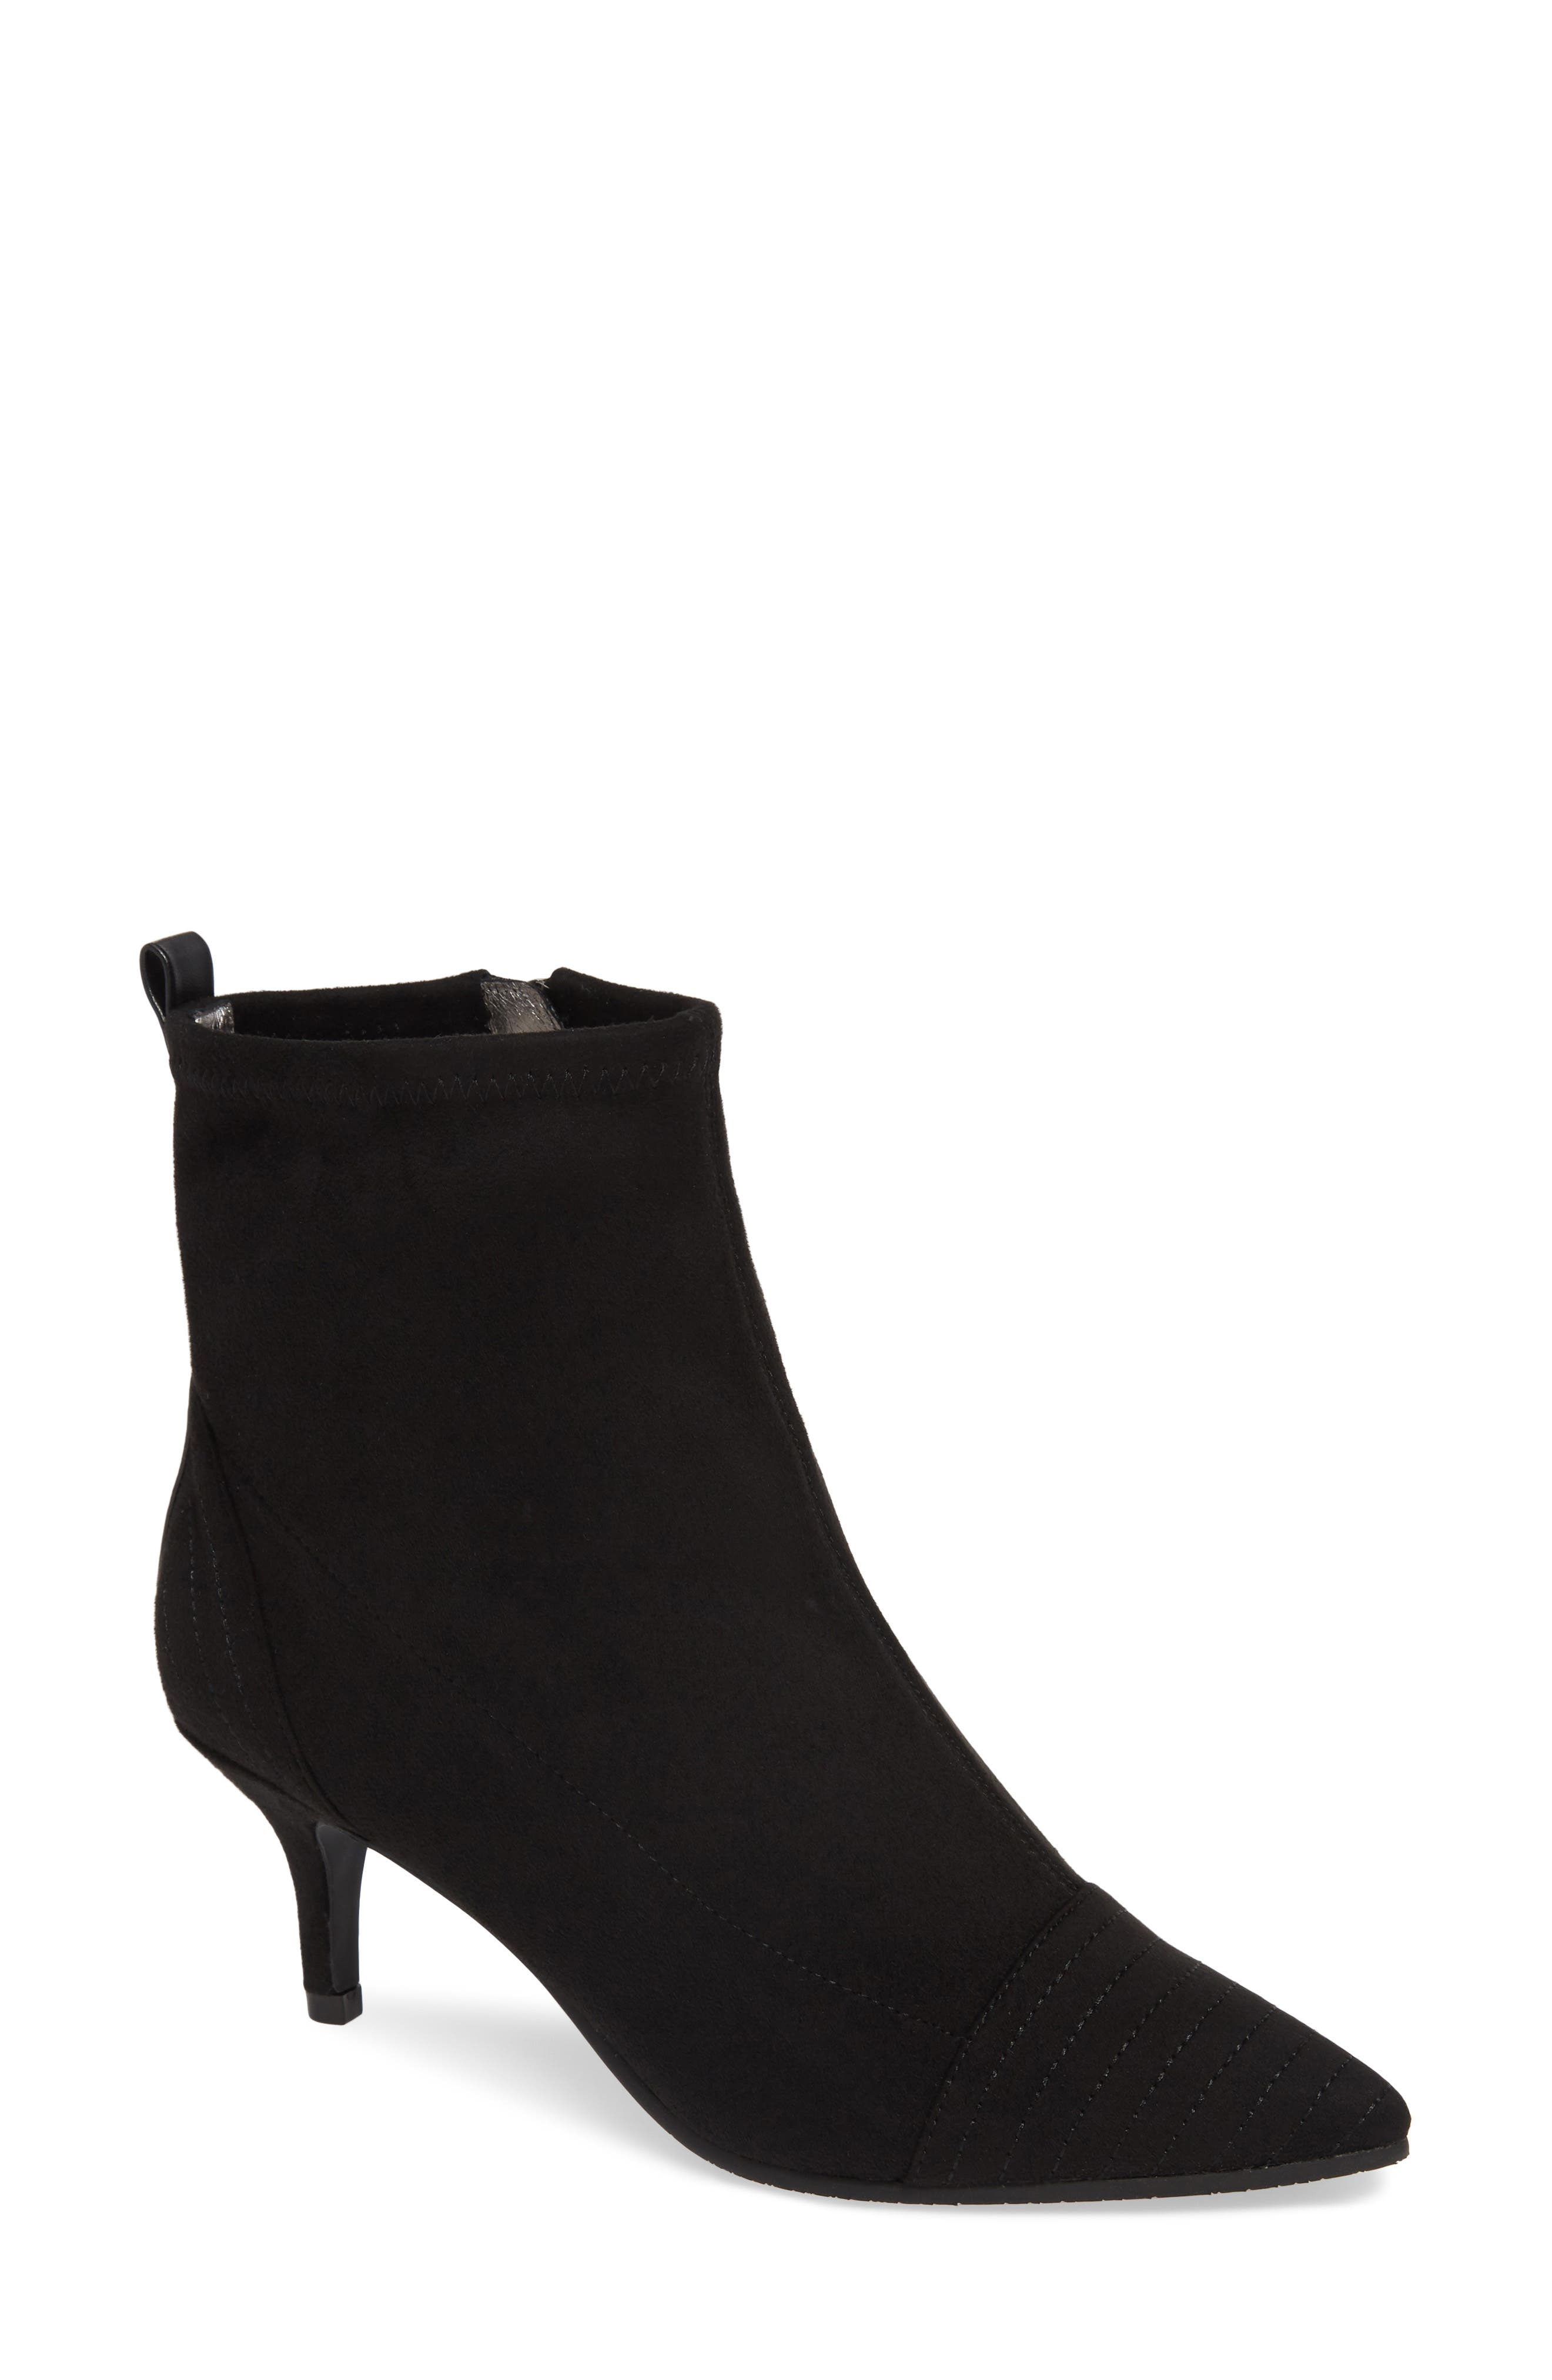 Adrianna Papell Helene Bootie- Black